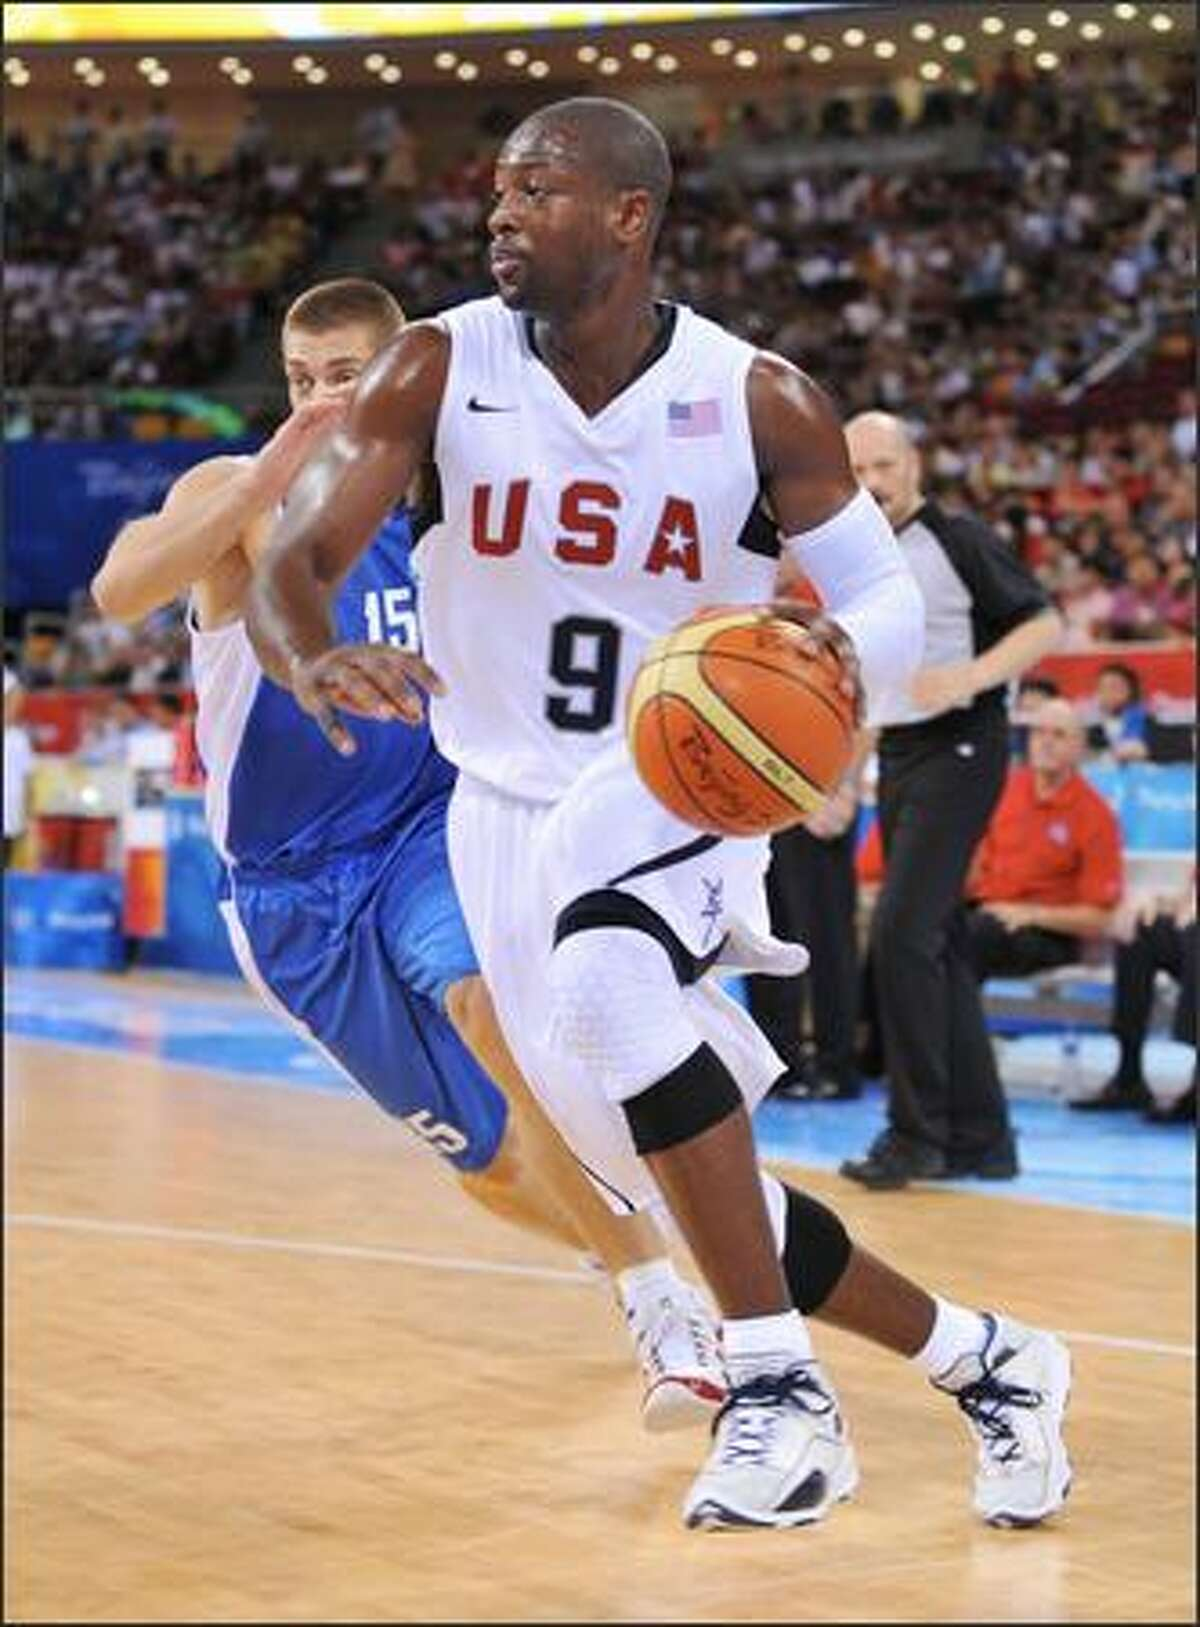 Dwyane Wade #9 of the U.S. Men's Senior National Team drives against Michalis Pelekanos #15 of Greece during a men's preliminary basketball game at the 2008 Beijing Olympic Games at the Beijing Olympic Basketball gymnasium on Thursday in Beijing, China. The U.S. won 92-69.